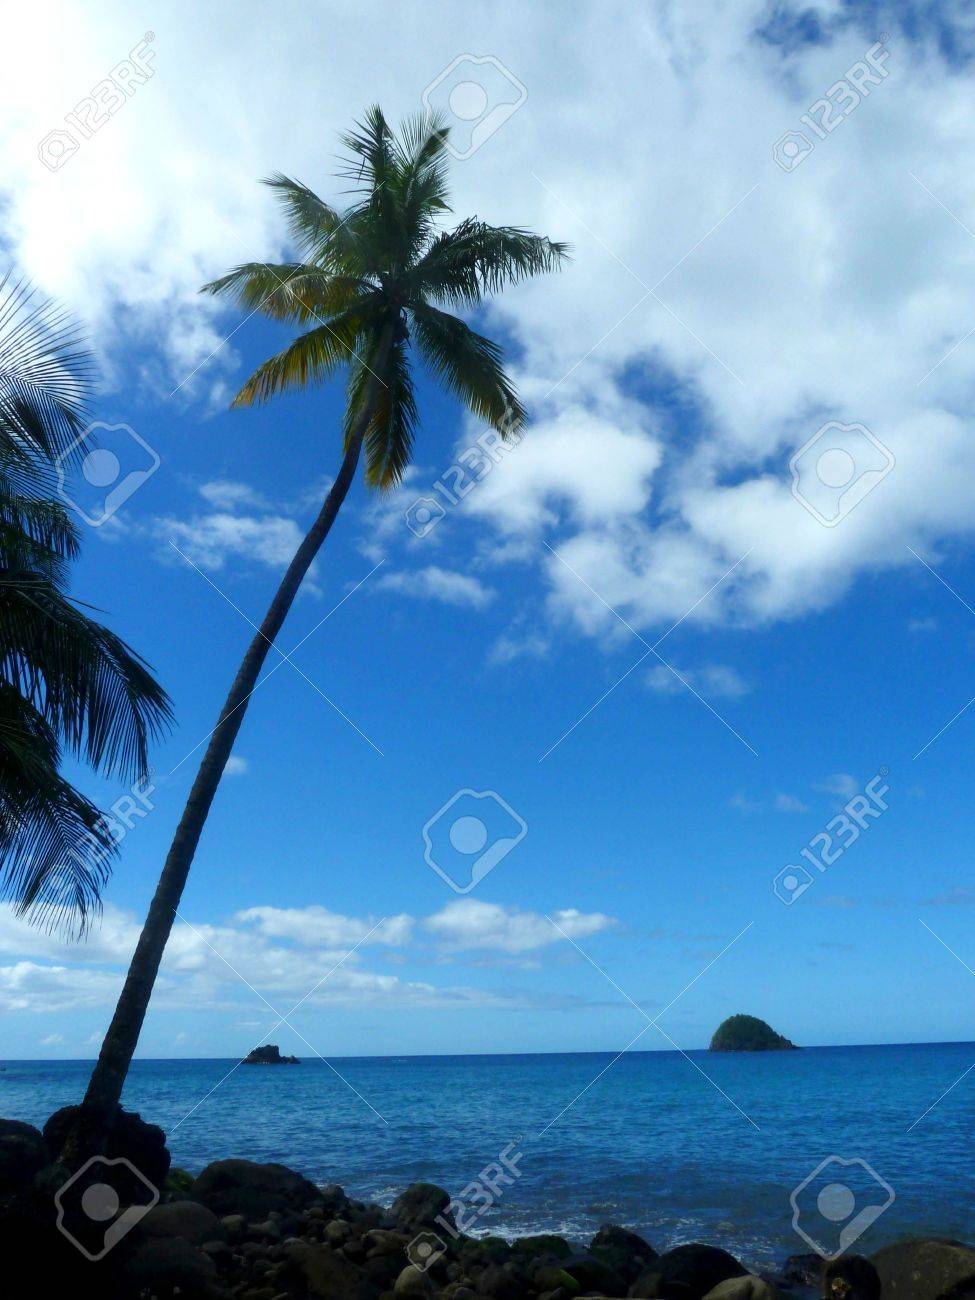 Palm tree by the sea Stock Photo - 57670818